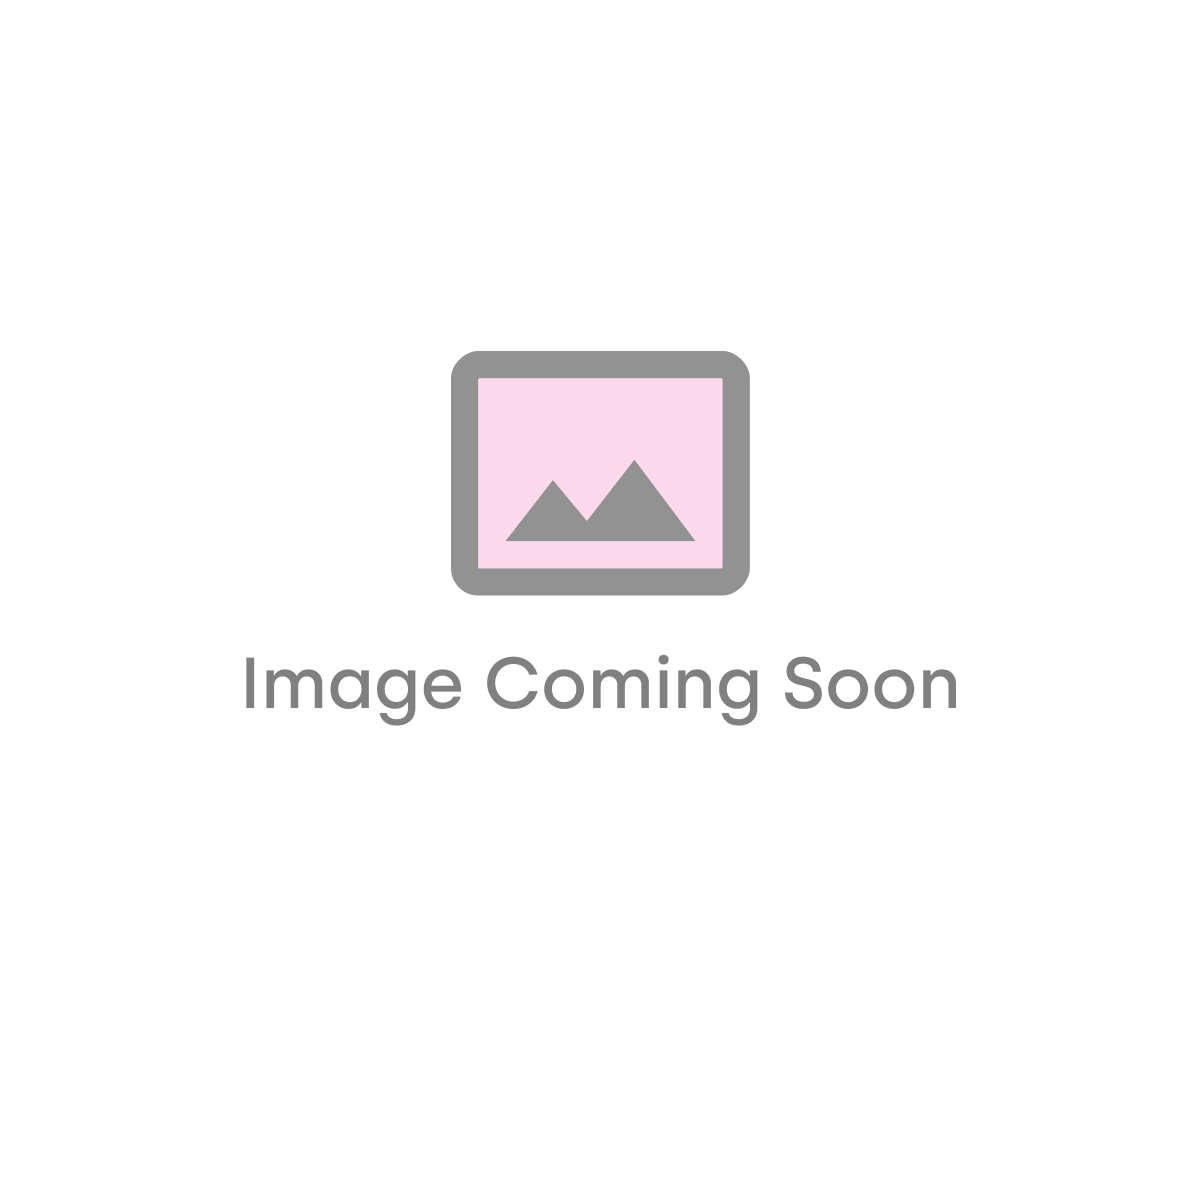 Eliseo Ricci Instant Boiling Water Kitchen Tap - Brushed Copper - 14478